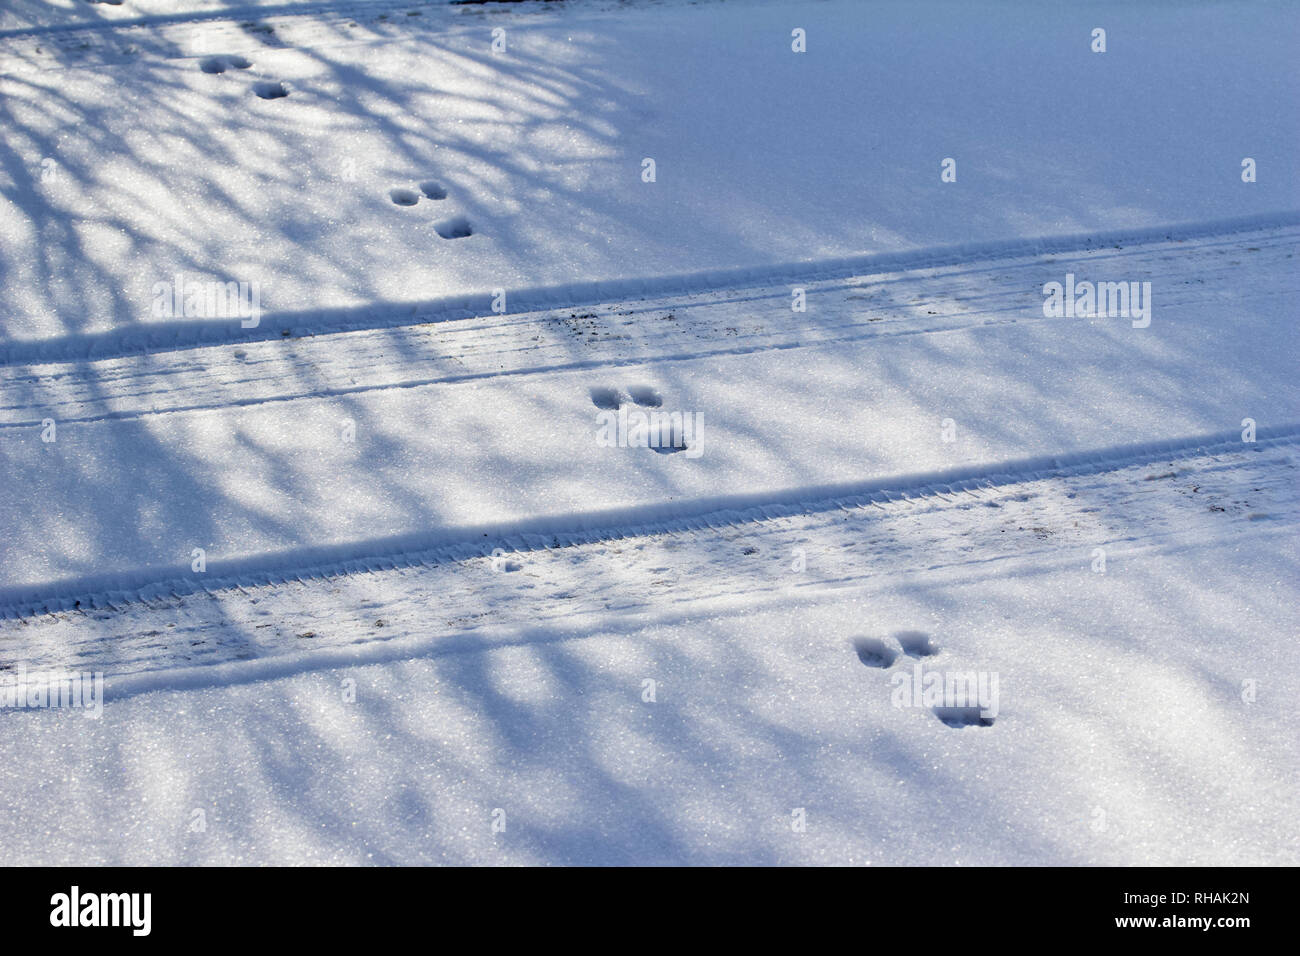 Winter snow texture abstract landscape background featuring rabbit tracks crossing tire tracks in the snow Stock Photo